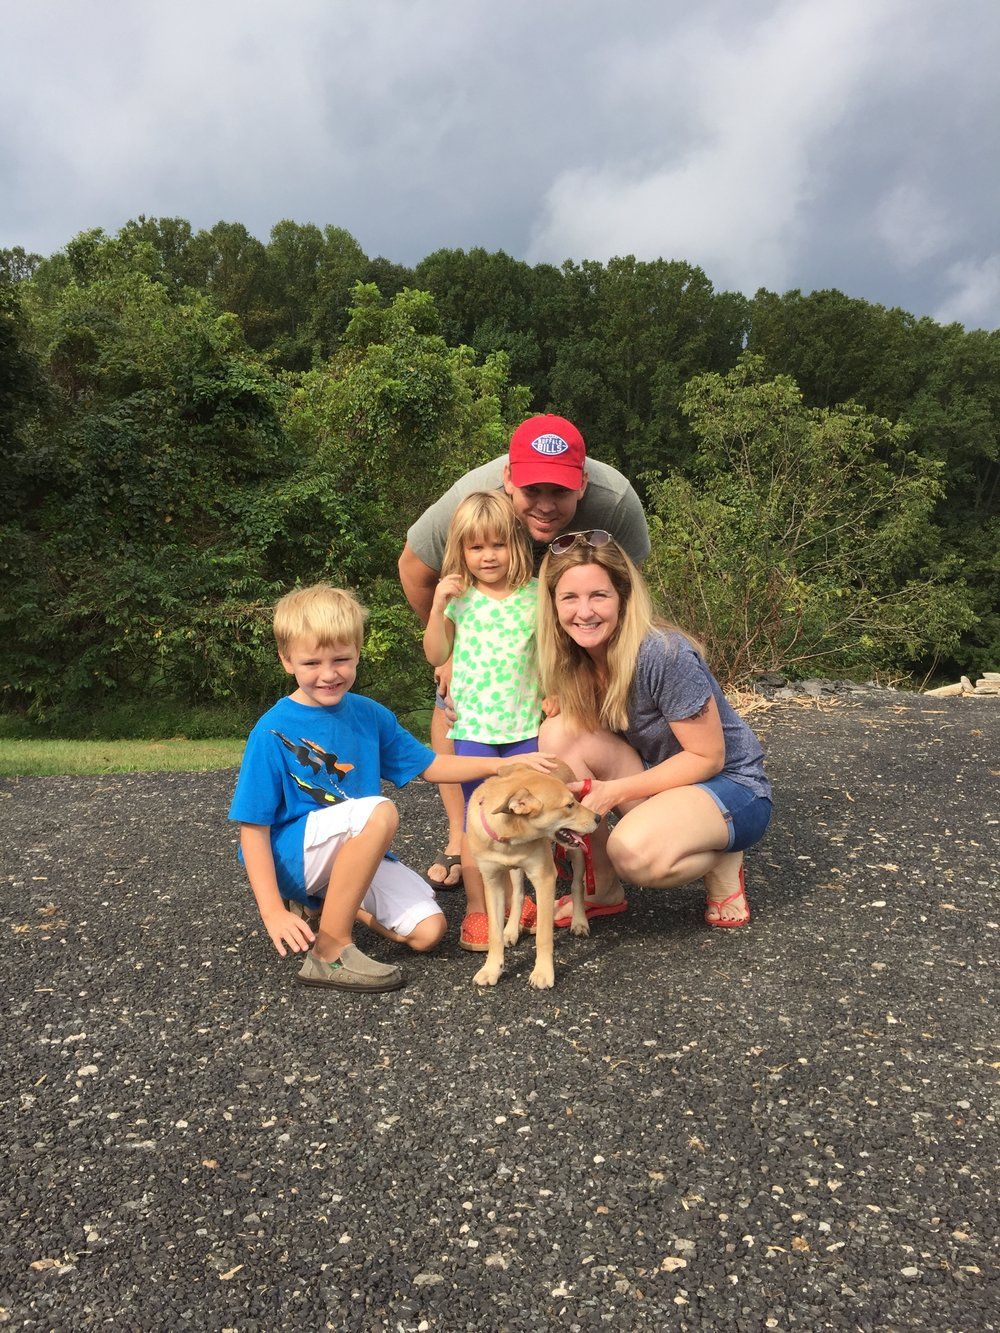 Kylie's furever home is sure to be full of lots of love with the Stanleys!